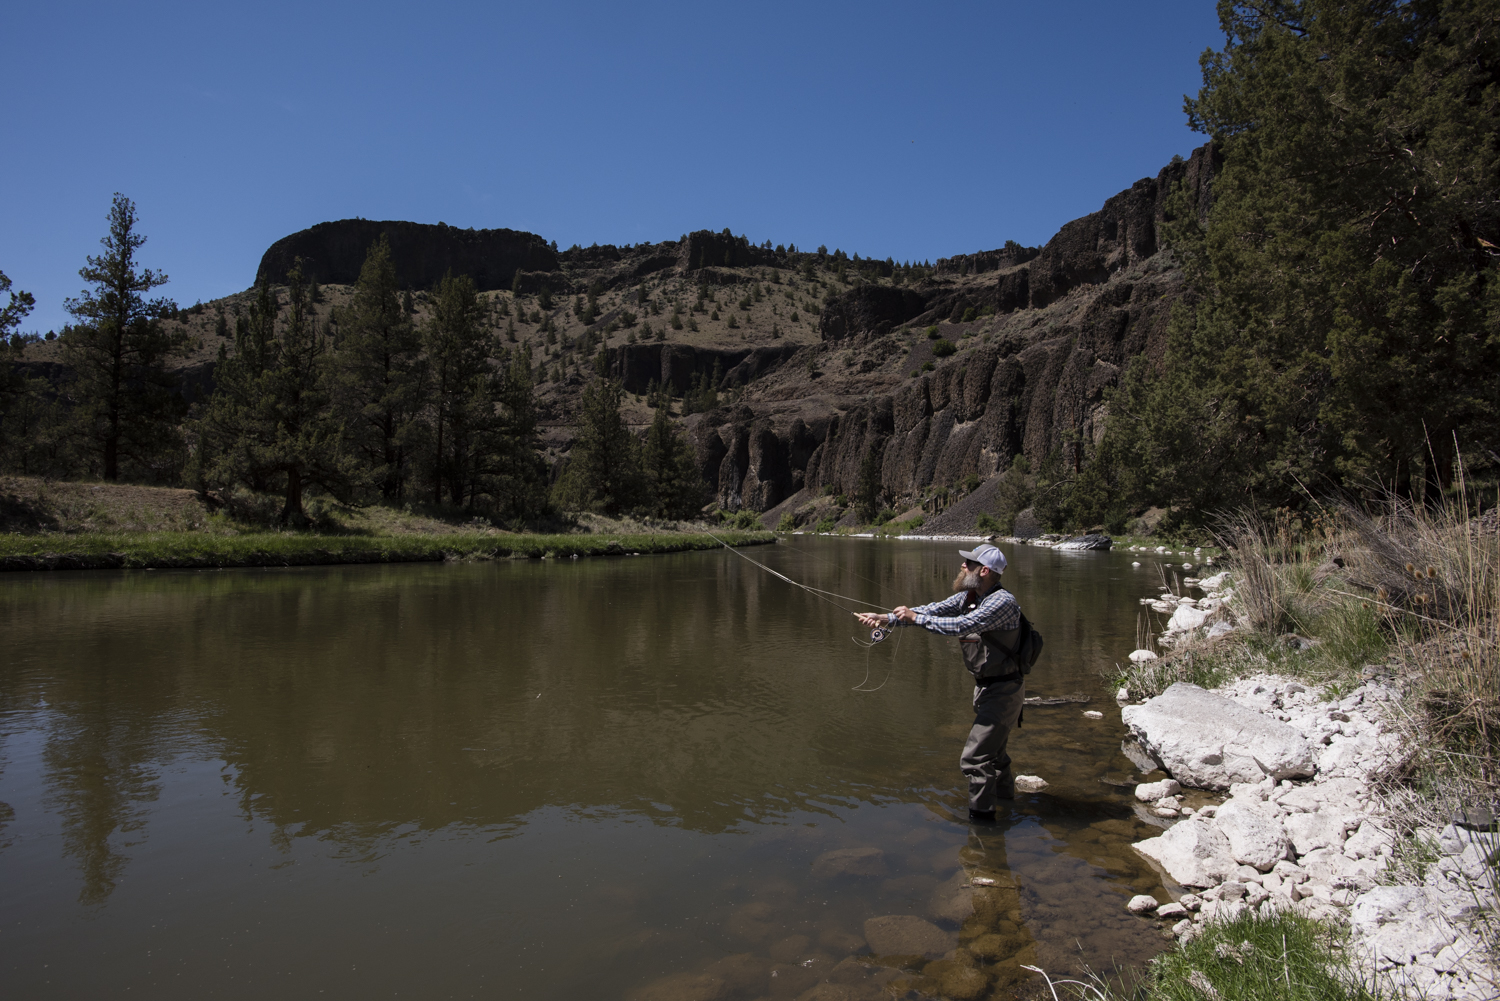 Perfect day for a little fly fishing.